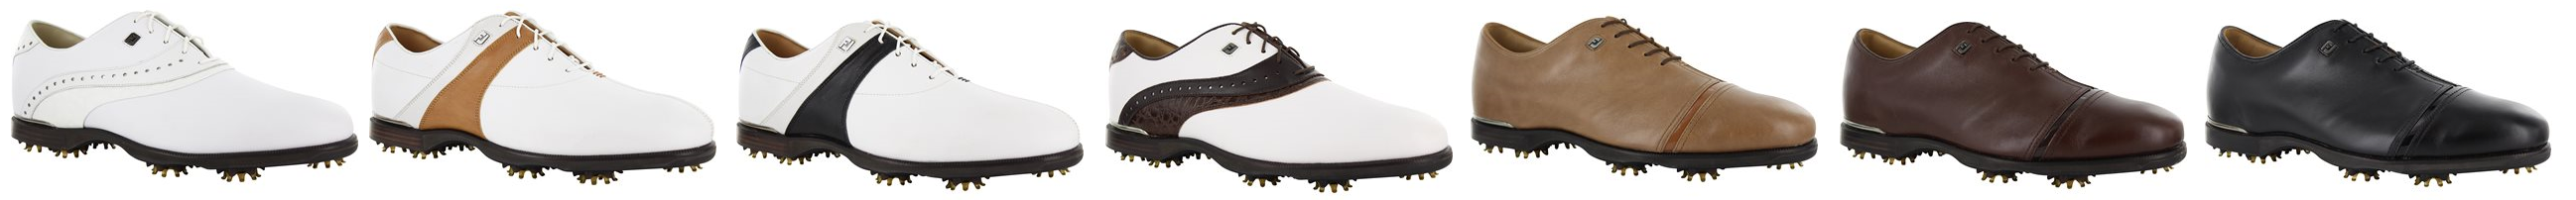 footjoy-icon-black-golf-shoes